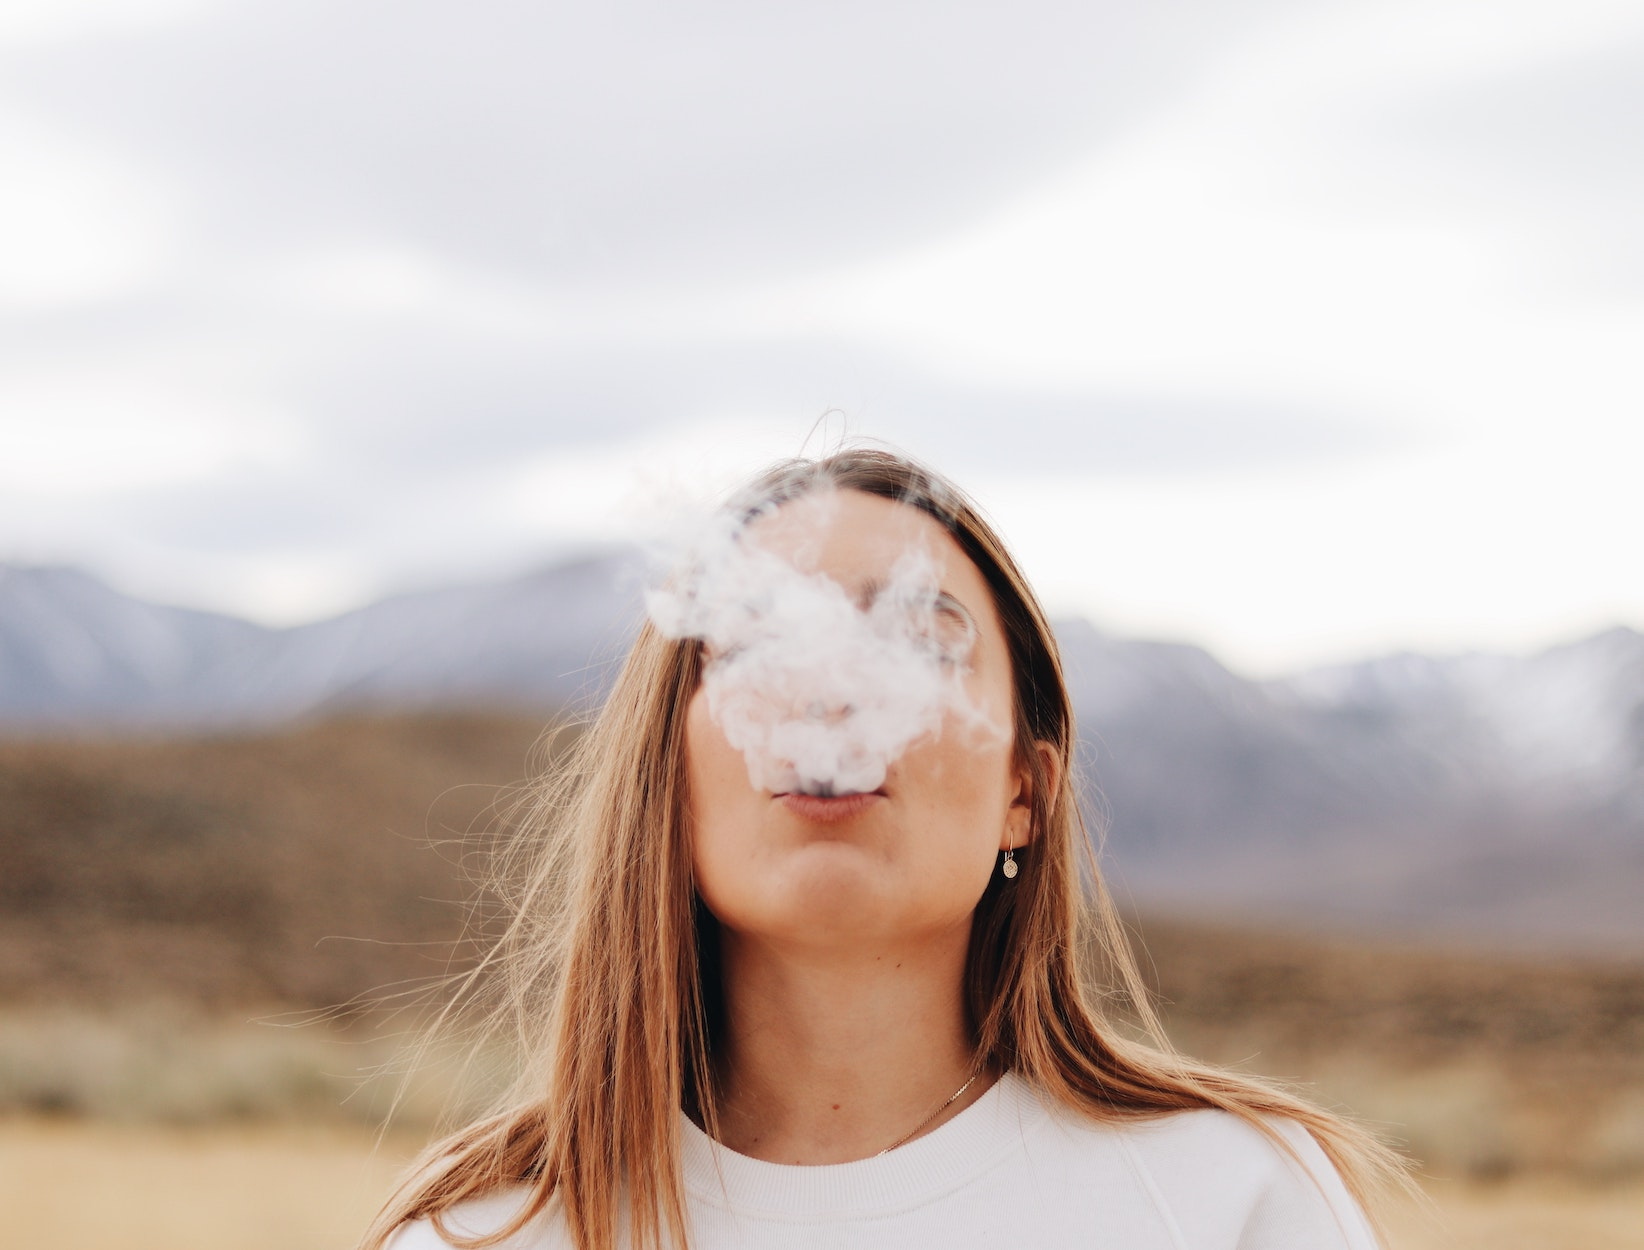 """Surgeon General Calls for Reversing the """"Epidemic"""" of Youth Vaping in Rare Advisory"""